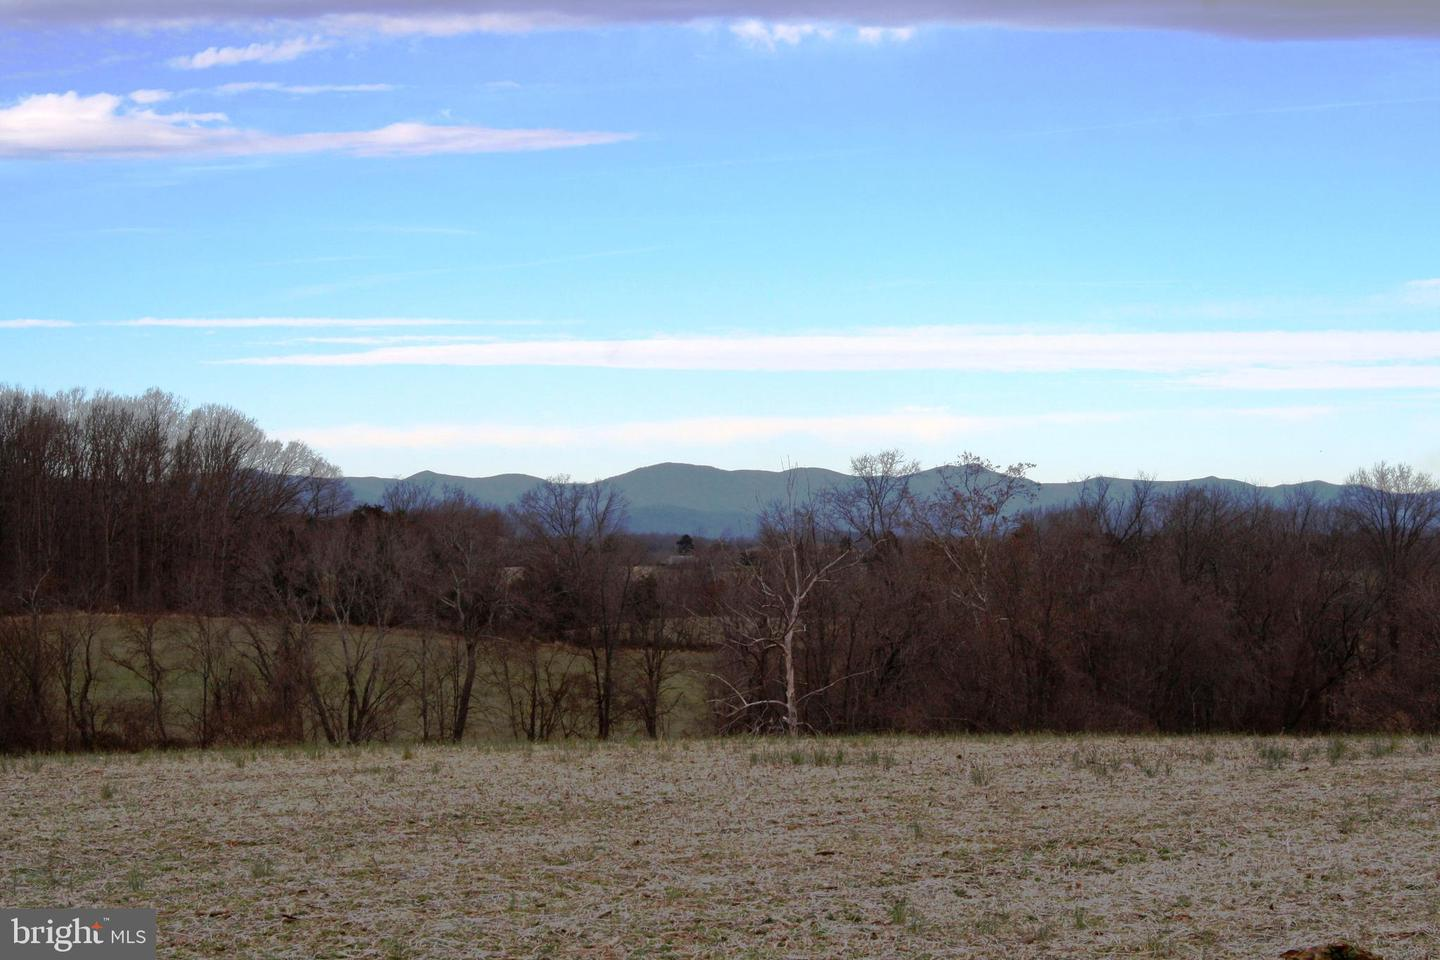 Land for Sale at Montpelier Station, Virginia 22957 United States